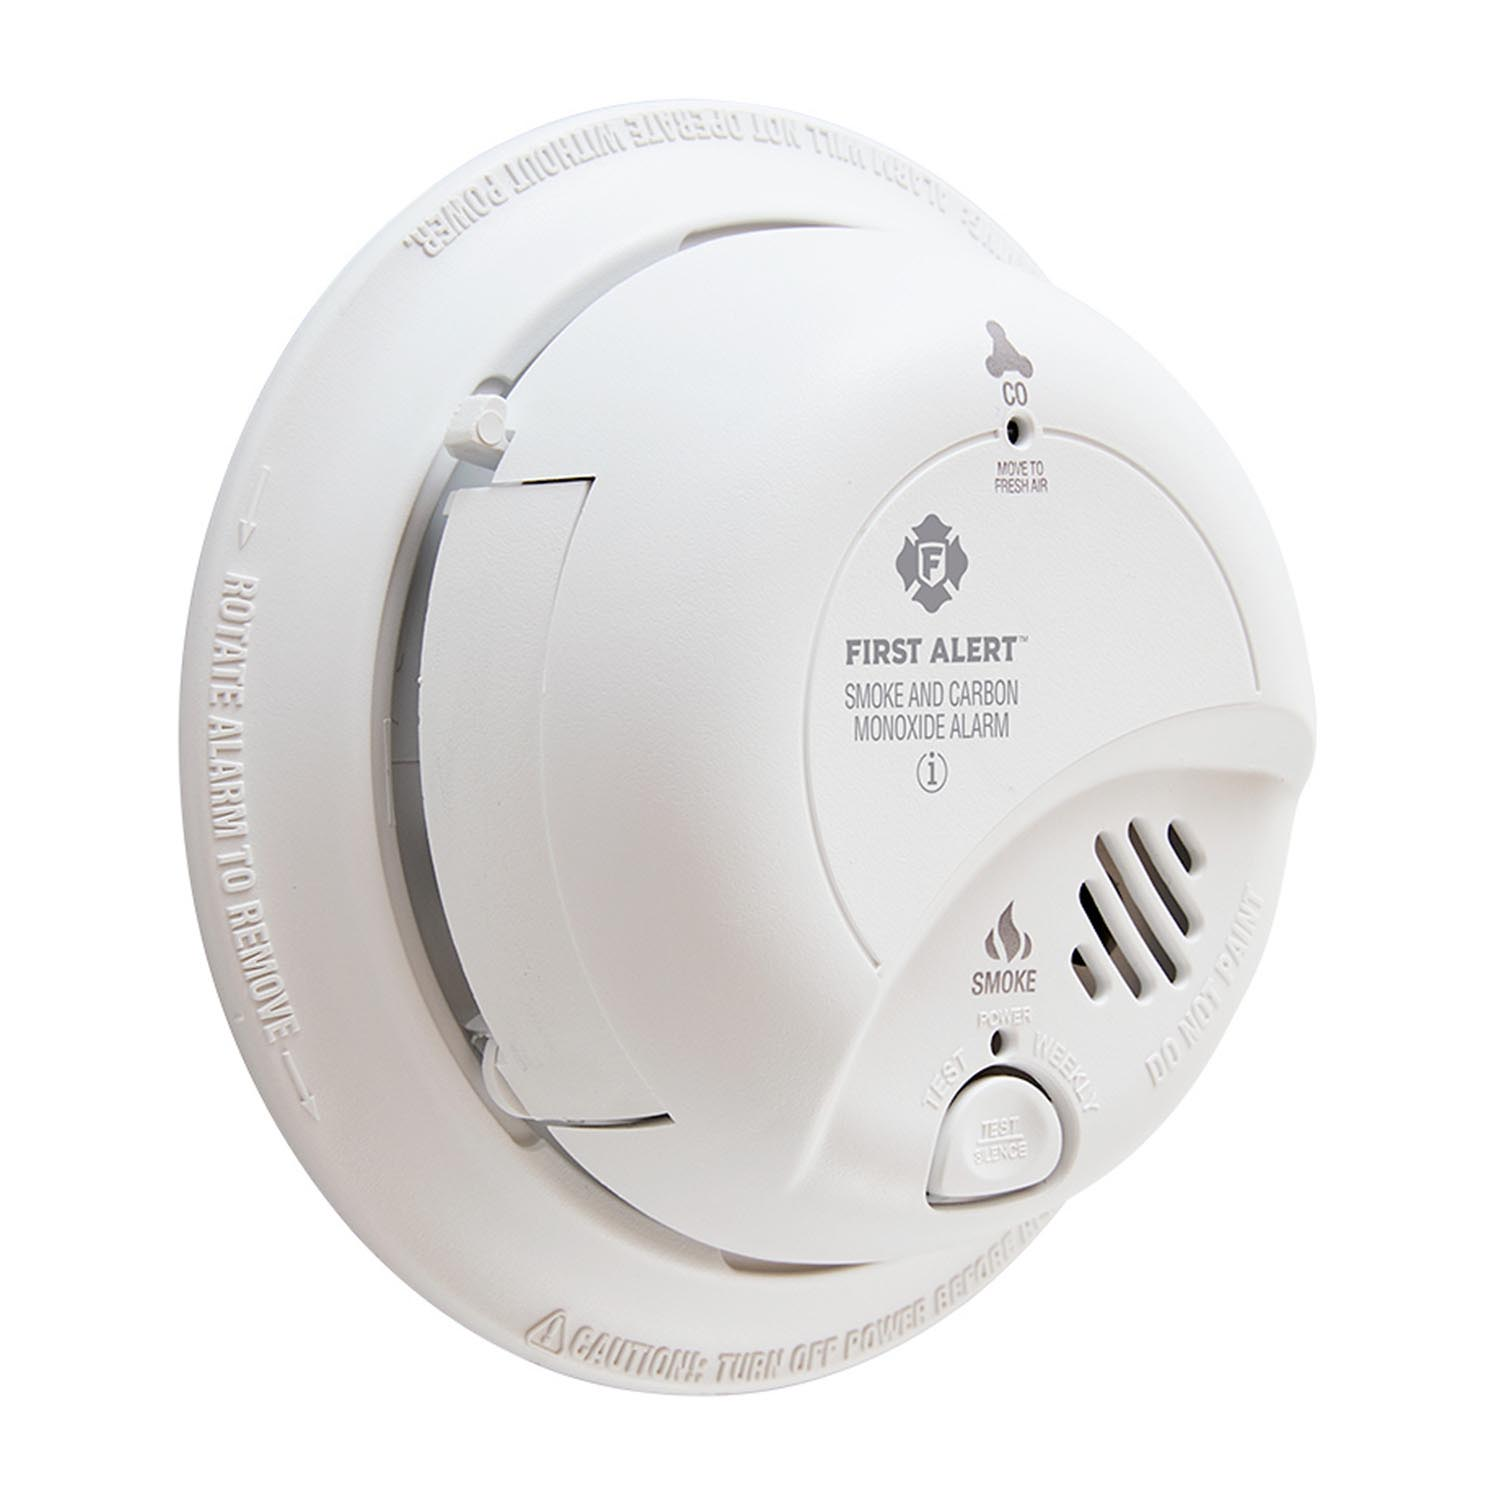 first alert hardwire combination smoke carbon monoxide alarm with battery backup first alert store. Black Bedroom Furniture Sets. Home Design Ideas